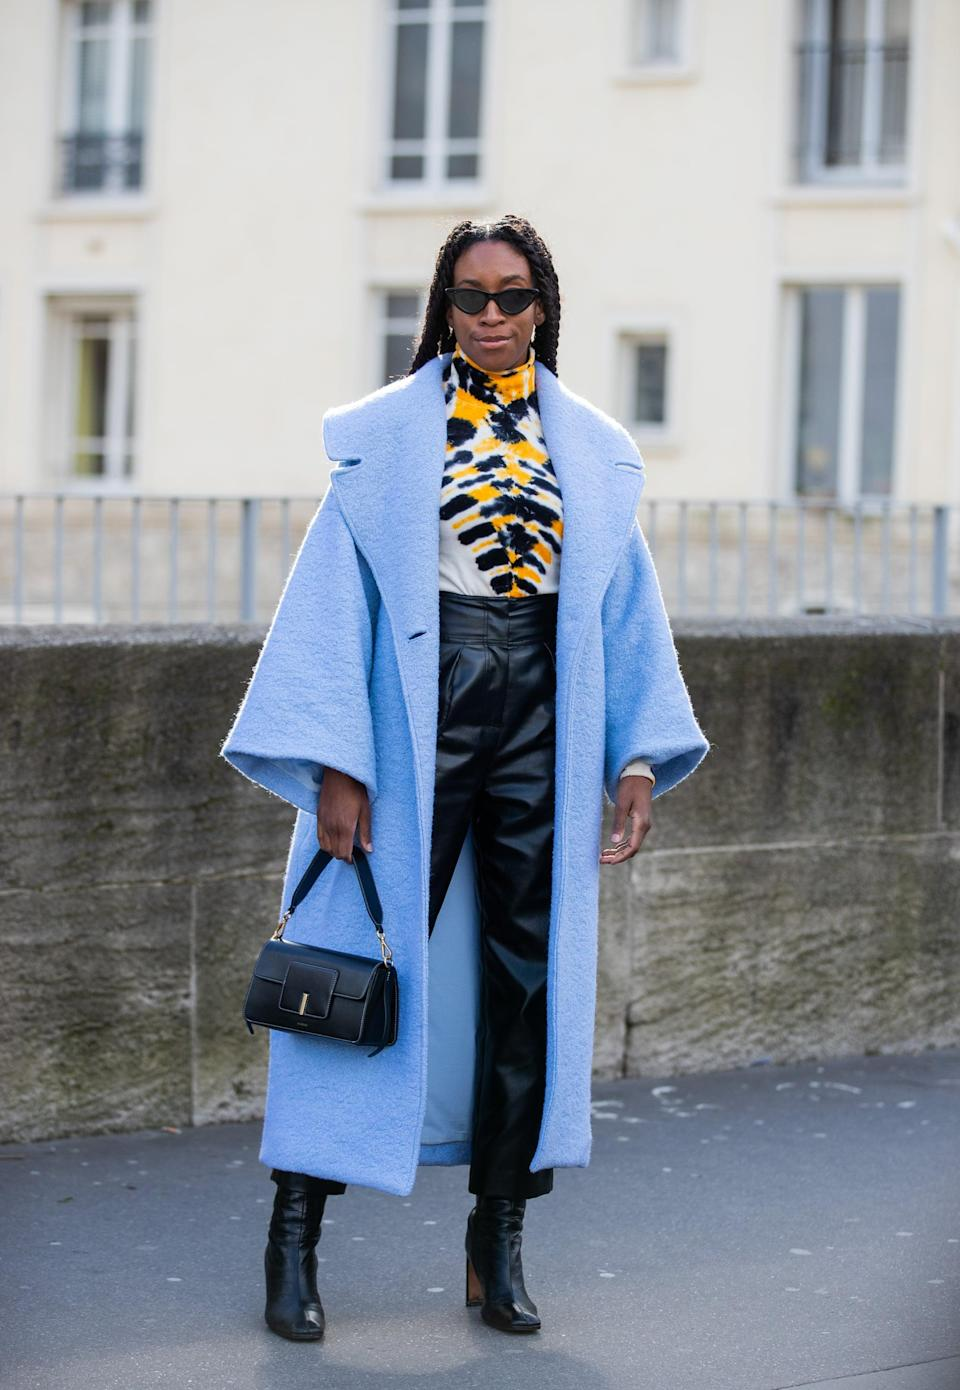 <p>It's the sunglasses trends we can't ever seem to stay away from, but where functionality is concerned, the style is admittedly lacking.</p>